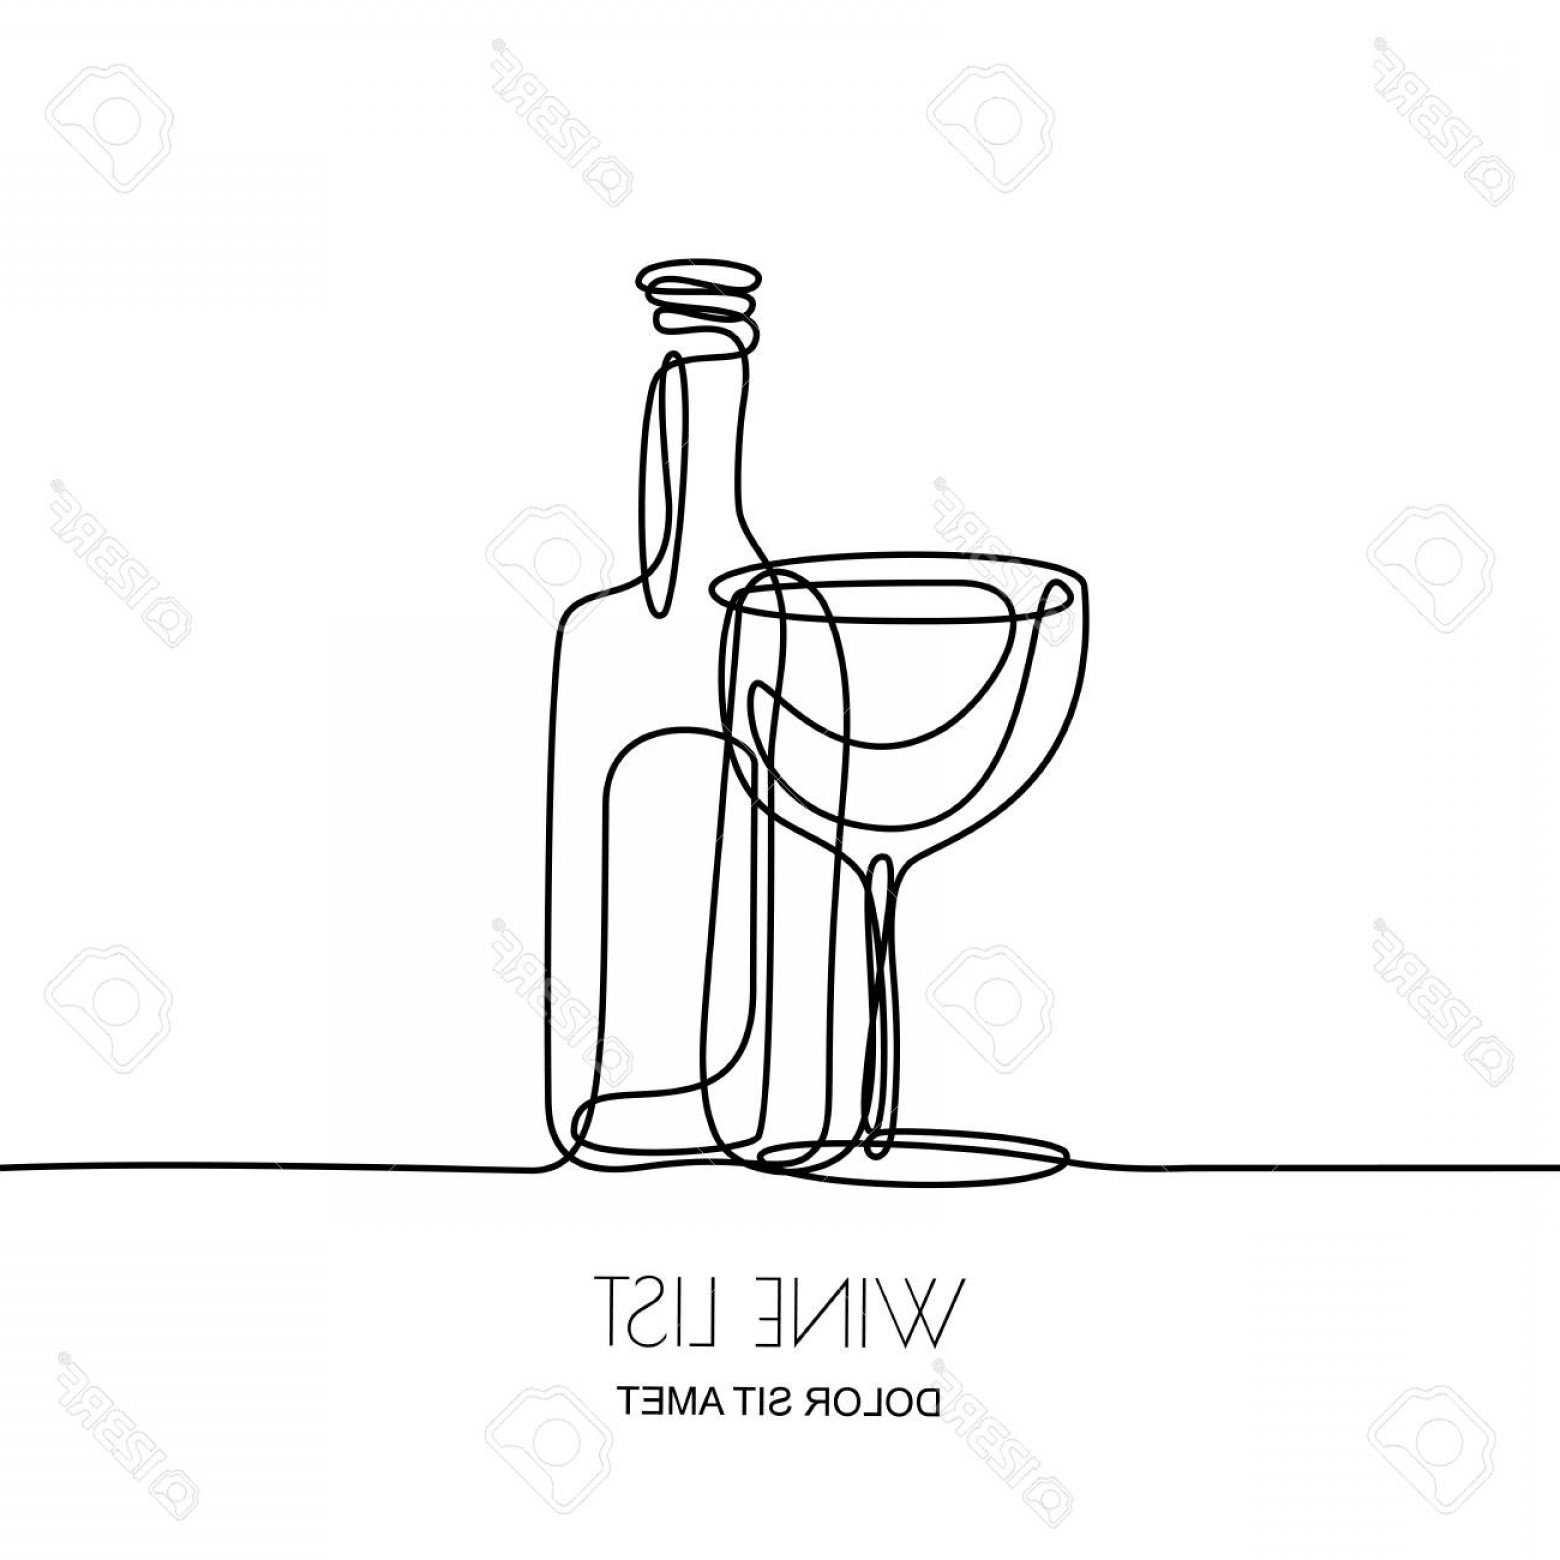 Wine Bottle Vector Line Art: Photostock Vector Continuous Line Drawing Vector Linear Black Illustration Of Wine Bottle And Glass Isolated On White